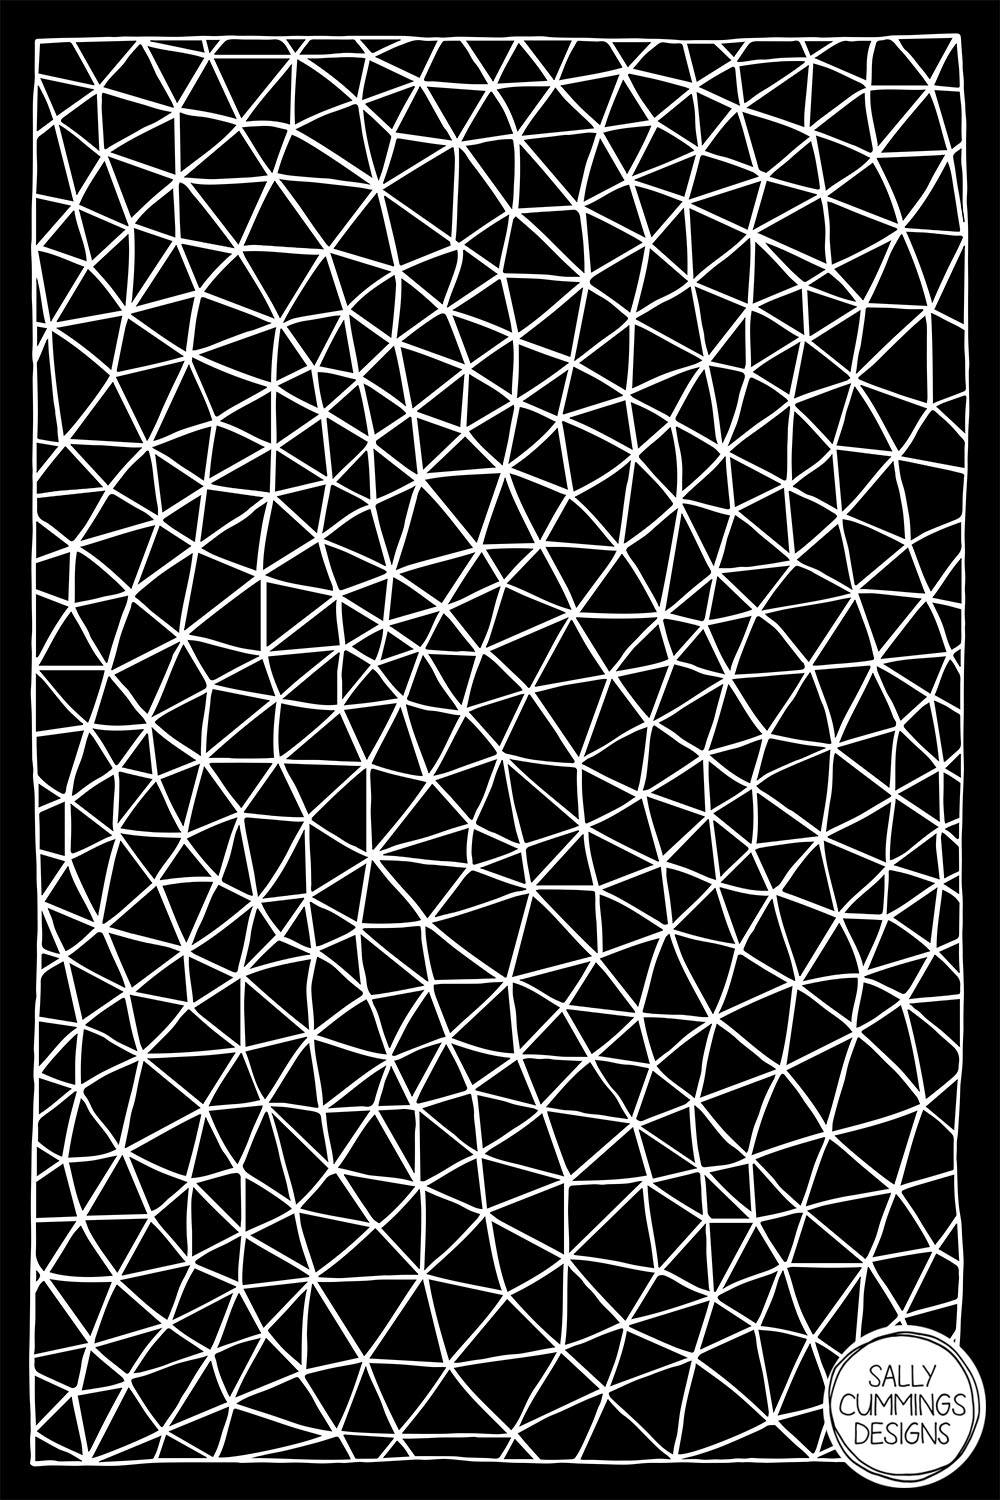 Sally Cummings Designs - Connectivity design (white on black)